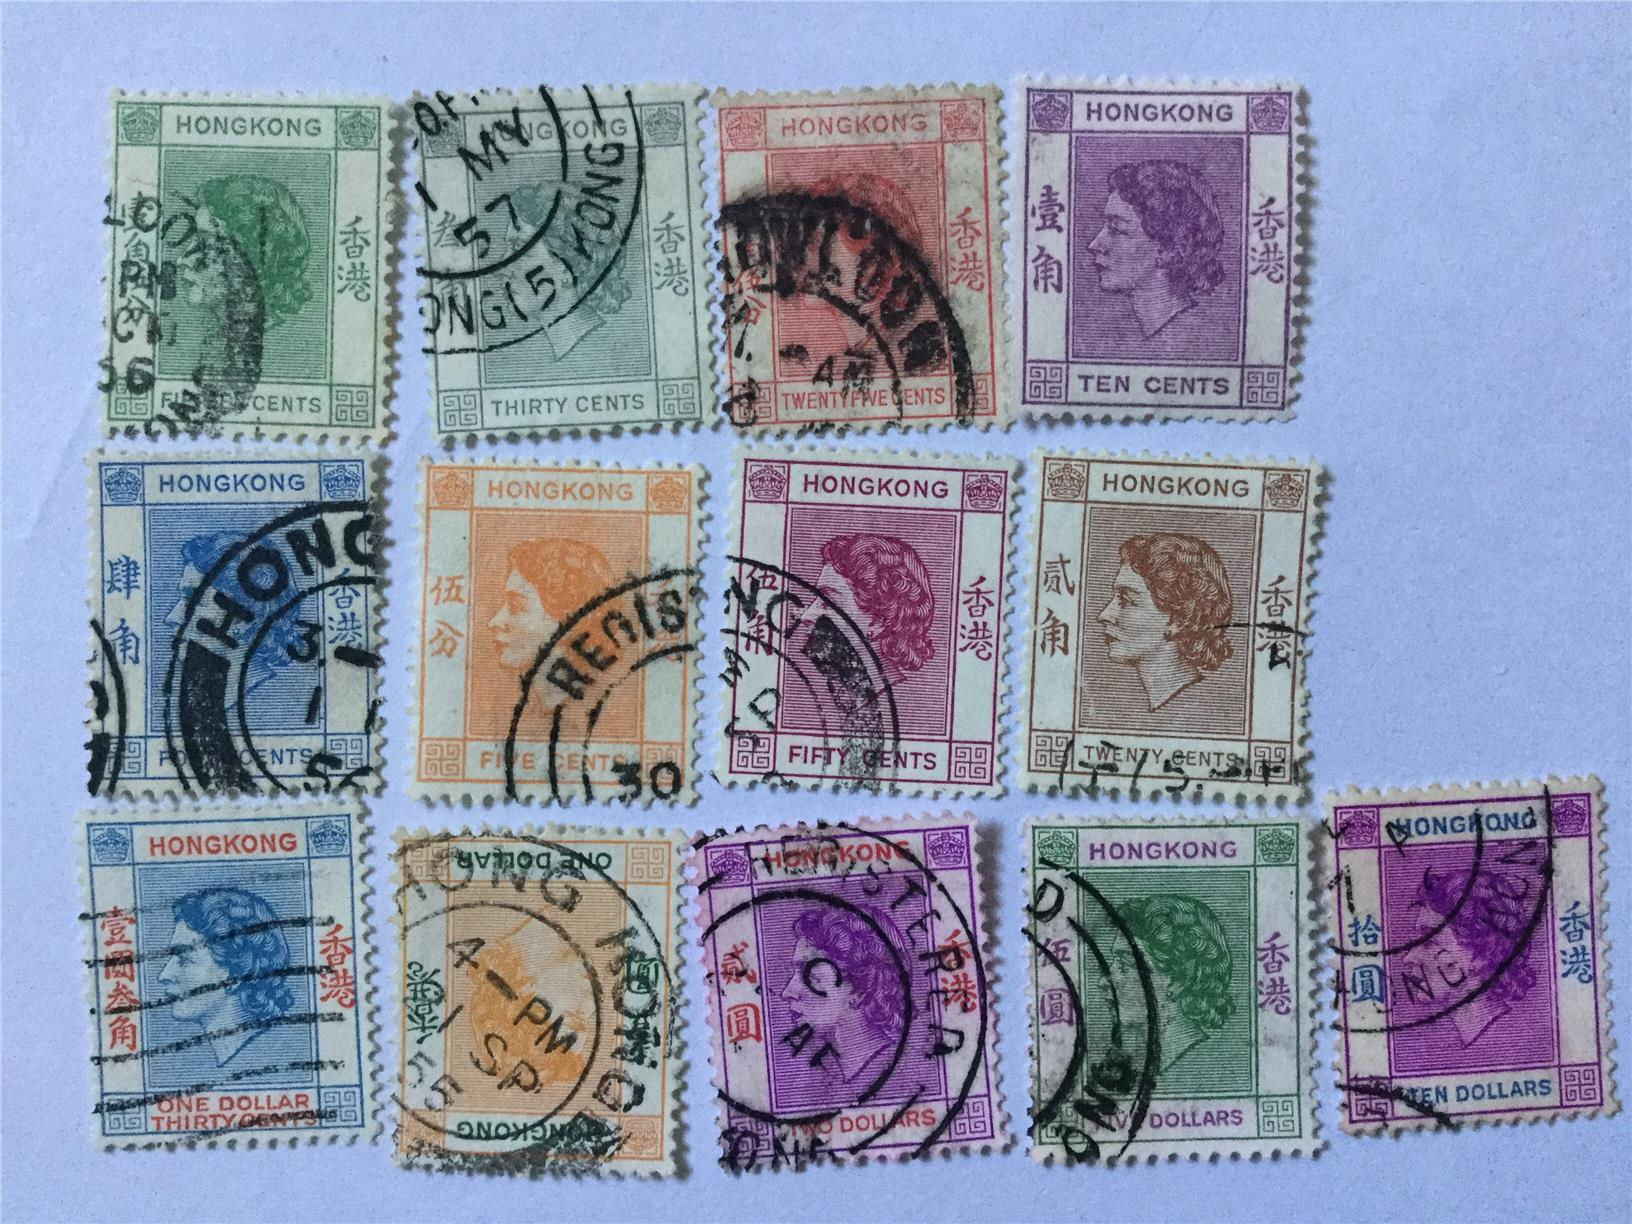 1954 Hong Kong Nice Stamps Lot 10 Up to $10